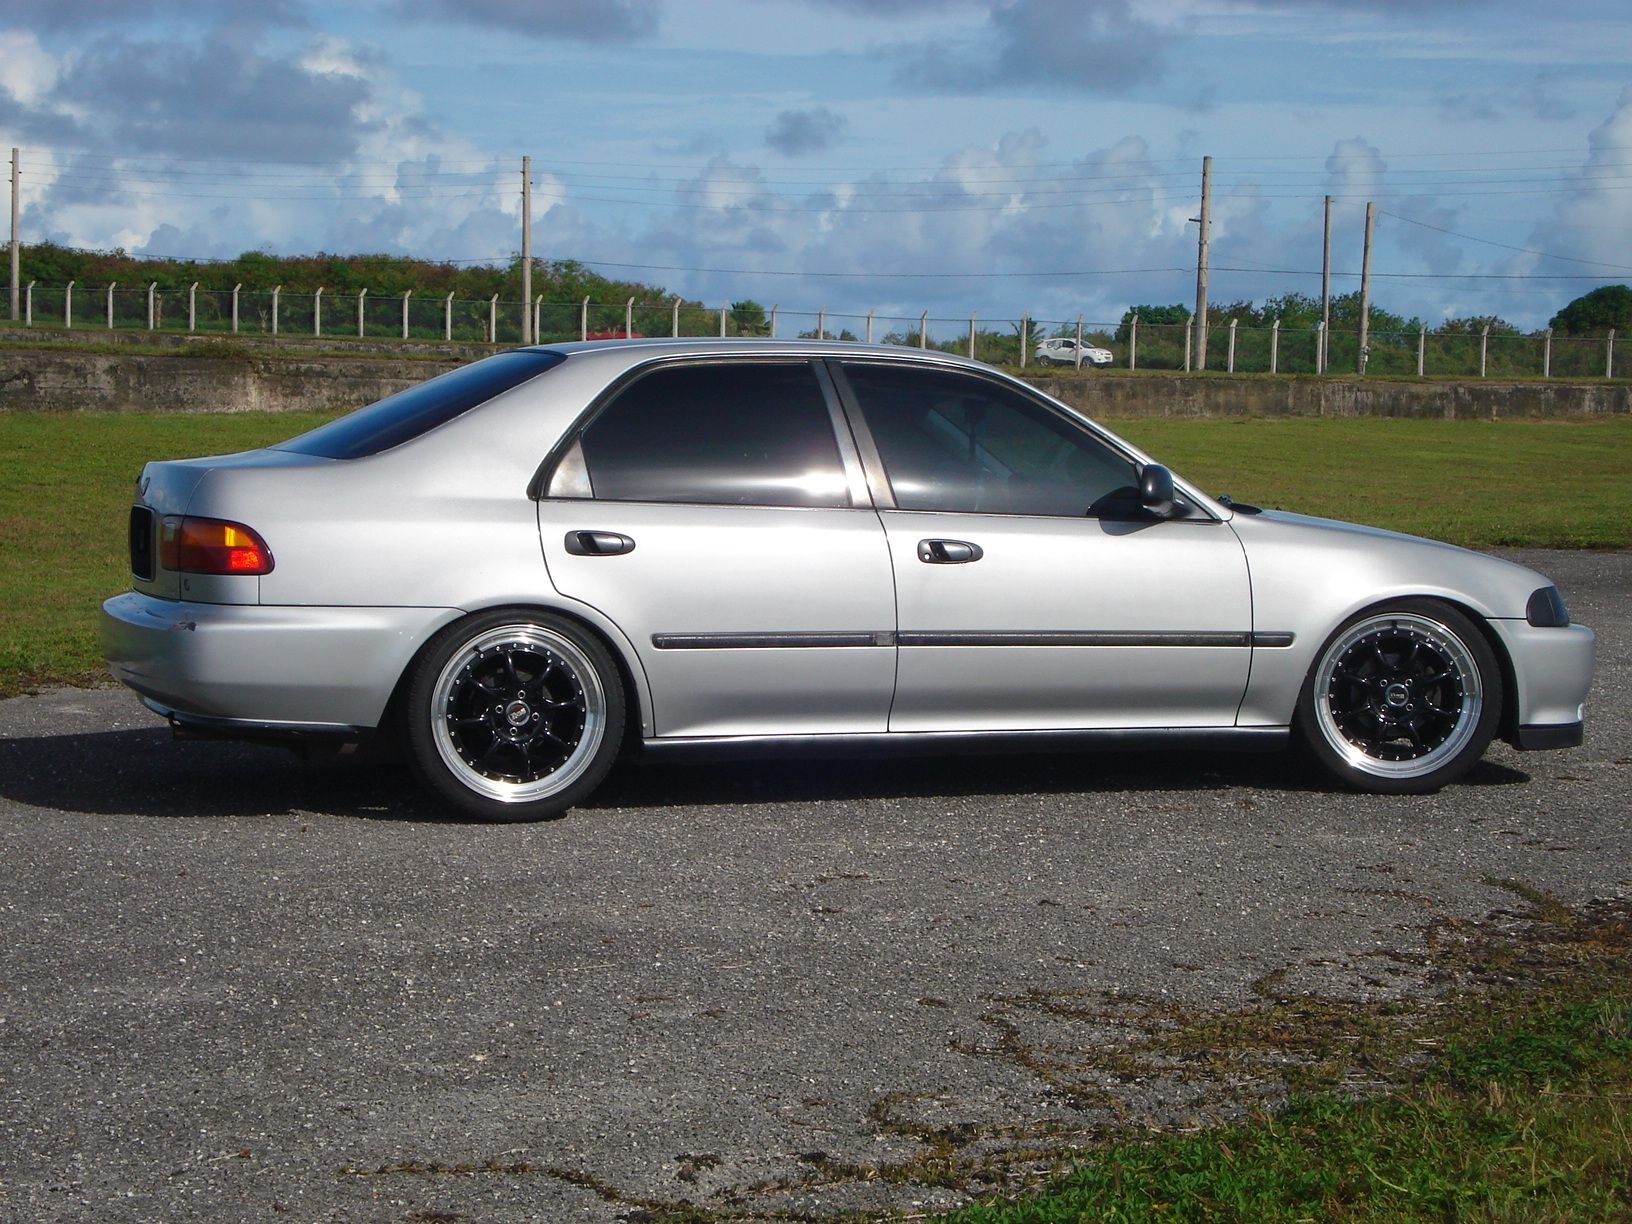 fotten gaga 1995 honda civicdx sedan 4d specs photos modification info at cardomain. Black Bedroom Furniture Sets. Home Design Ideas